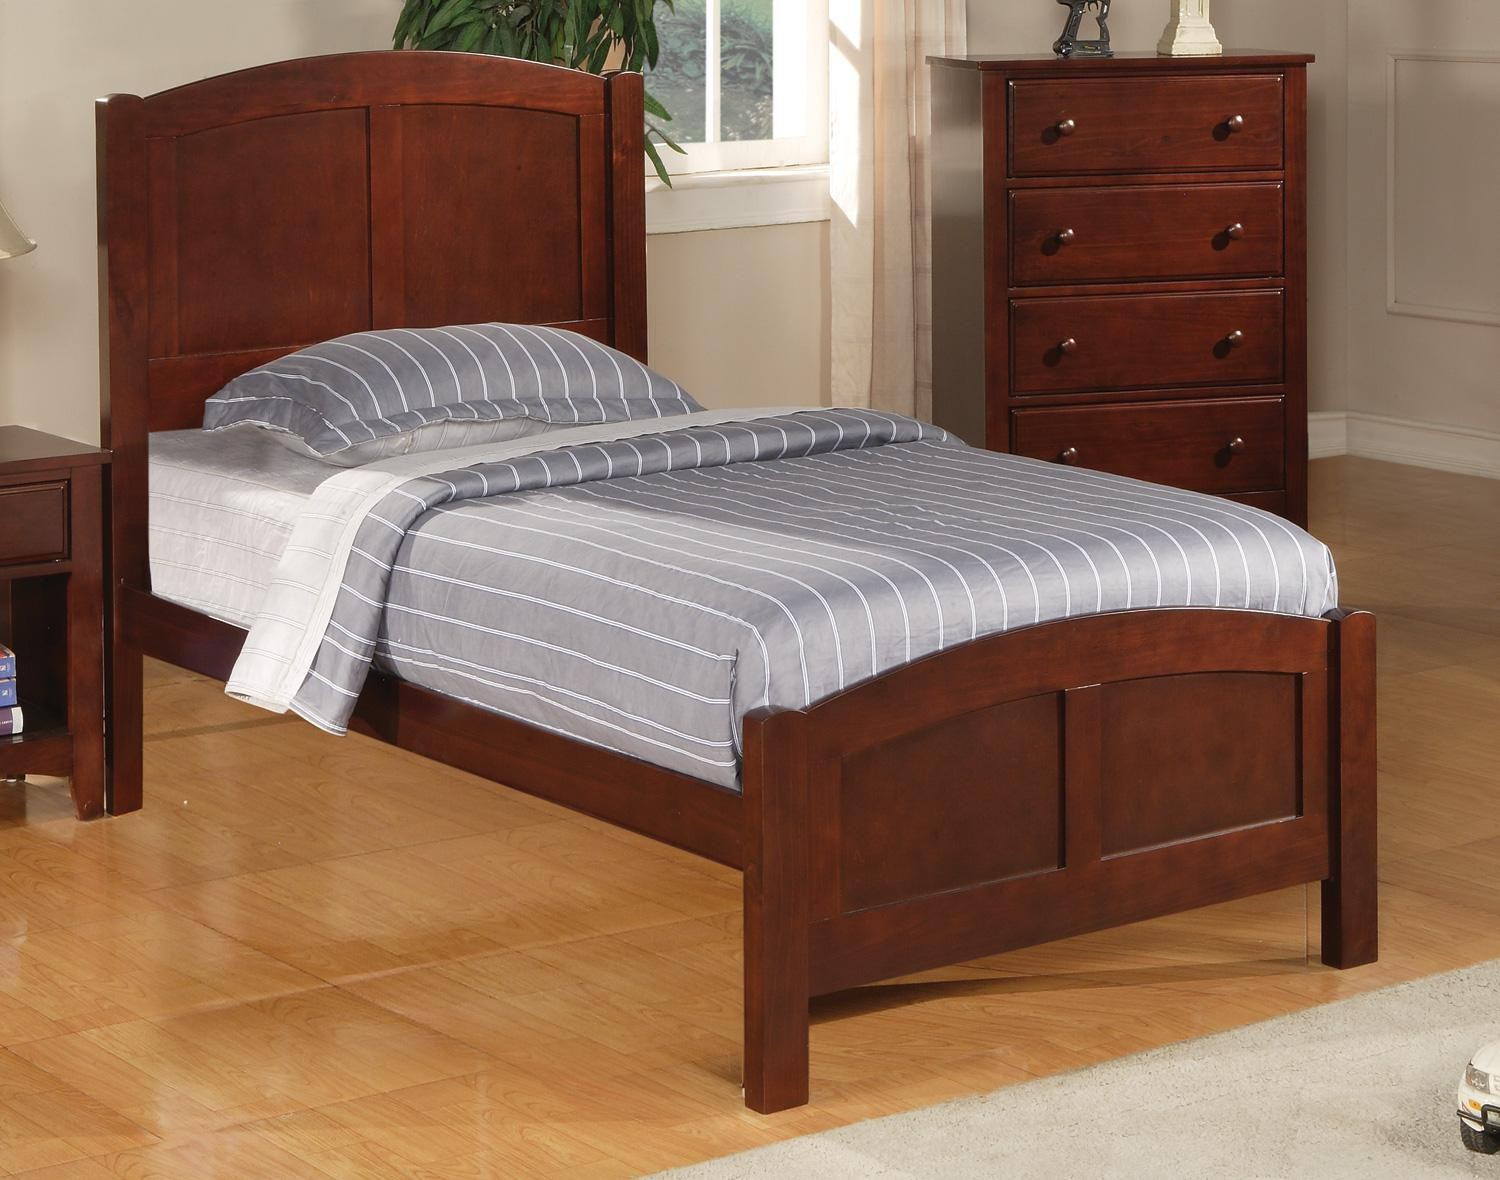 Parker Youth Bedroom Set 400291t From Coaster 400291t Coleman Furniture